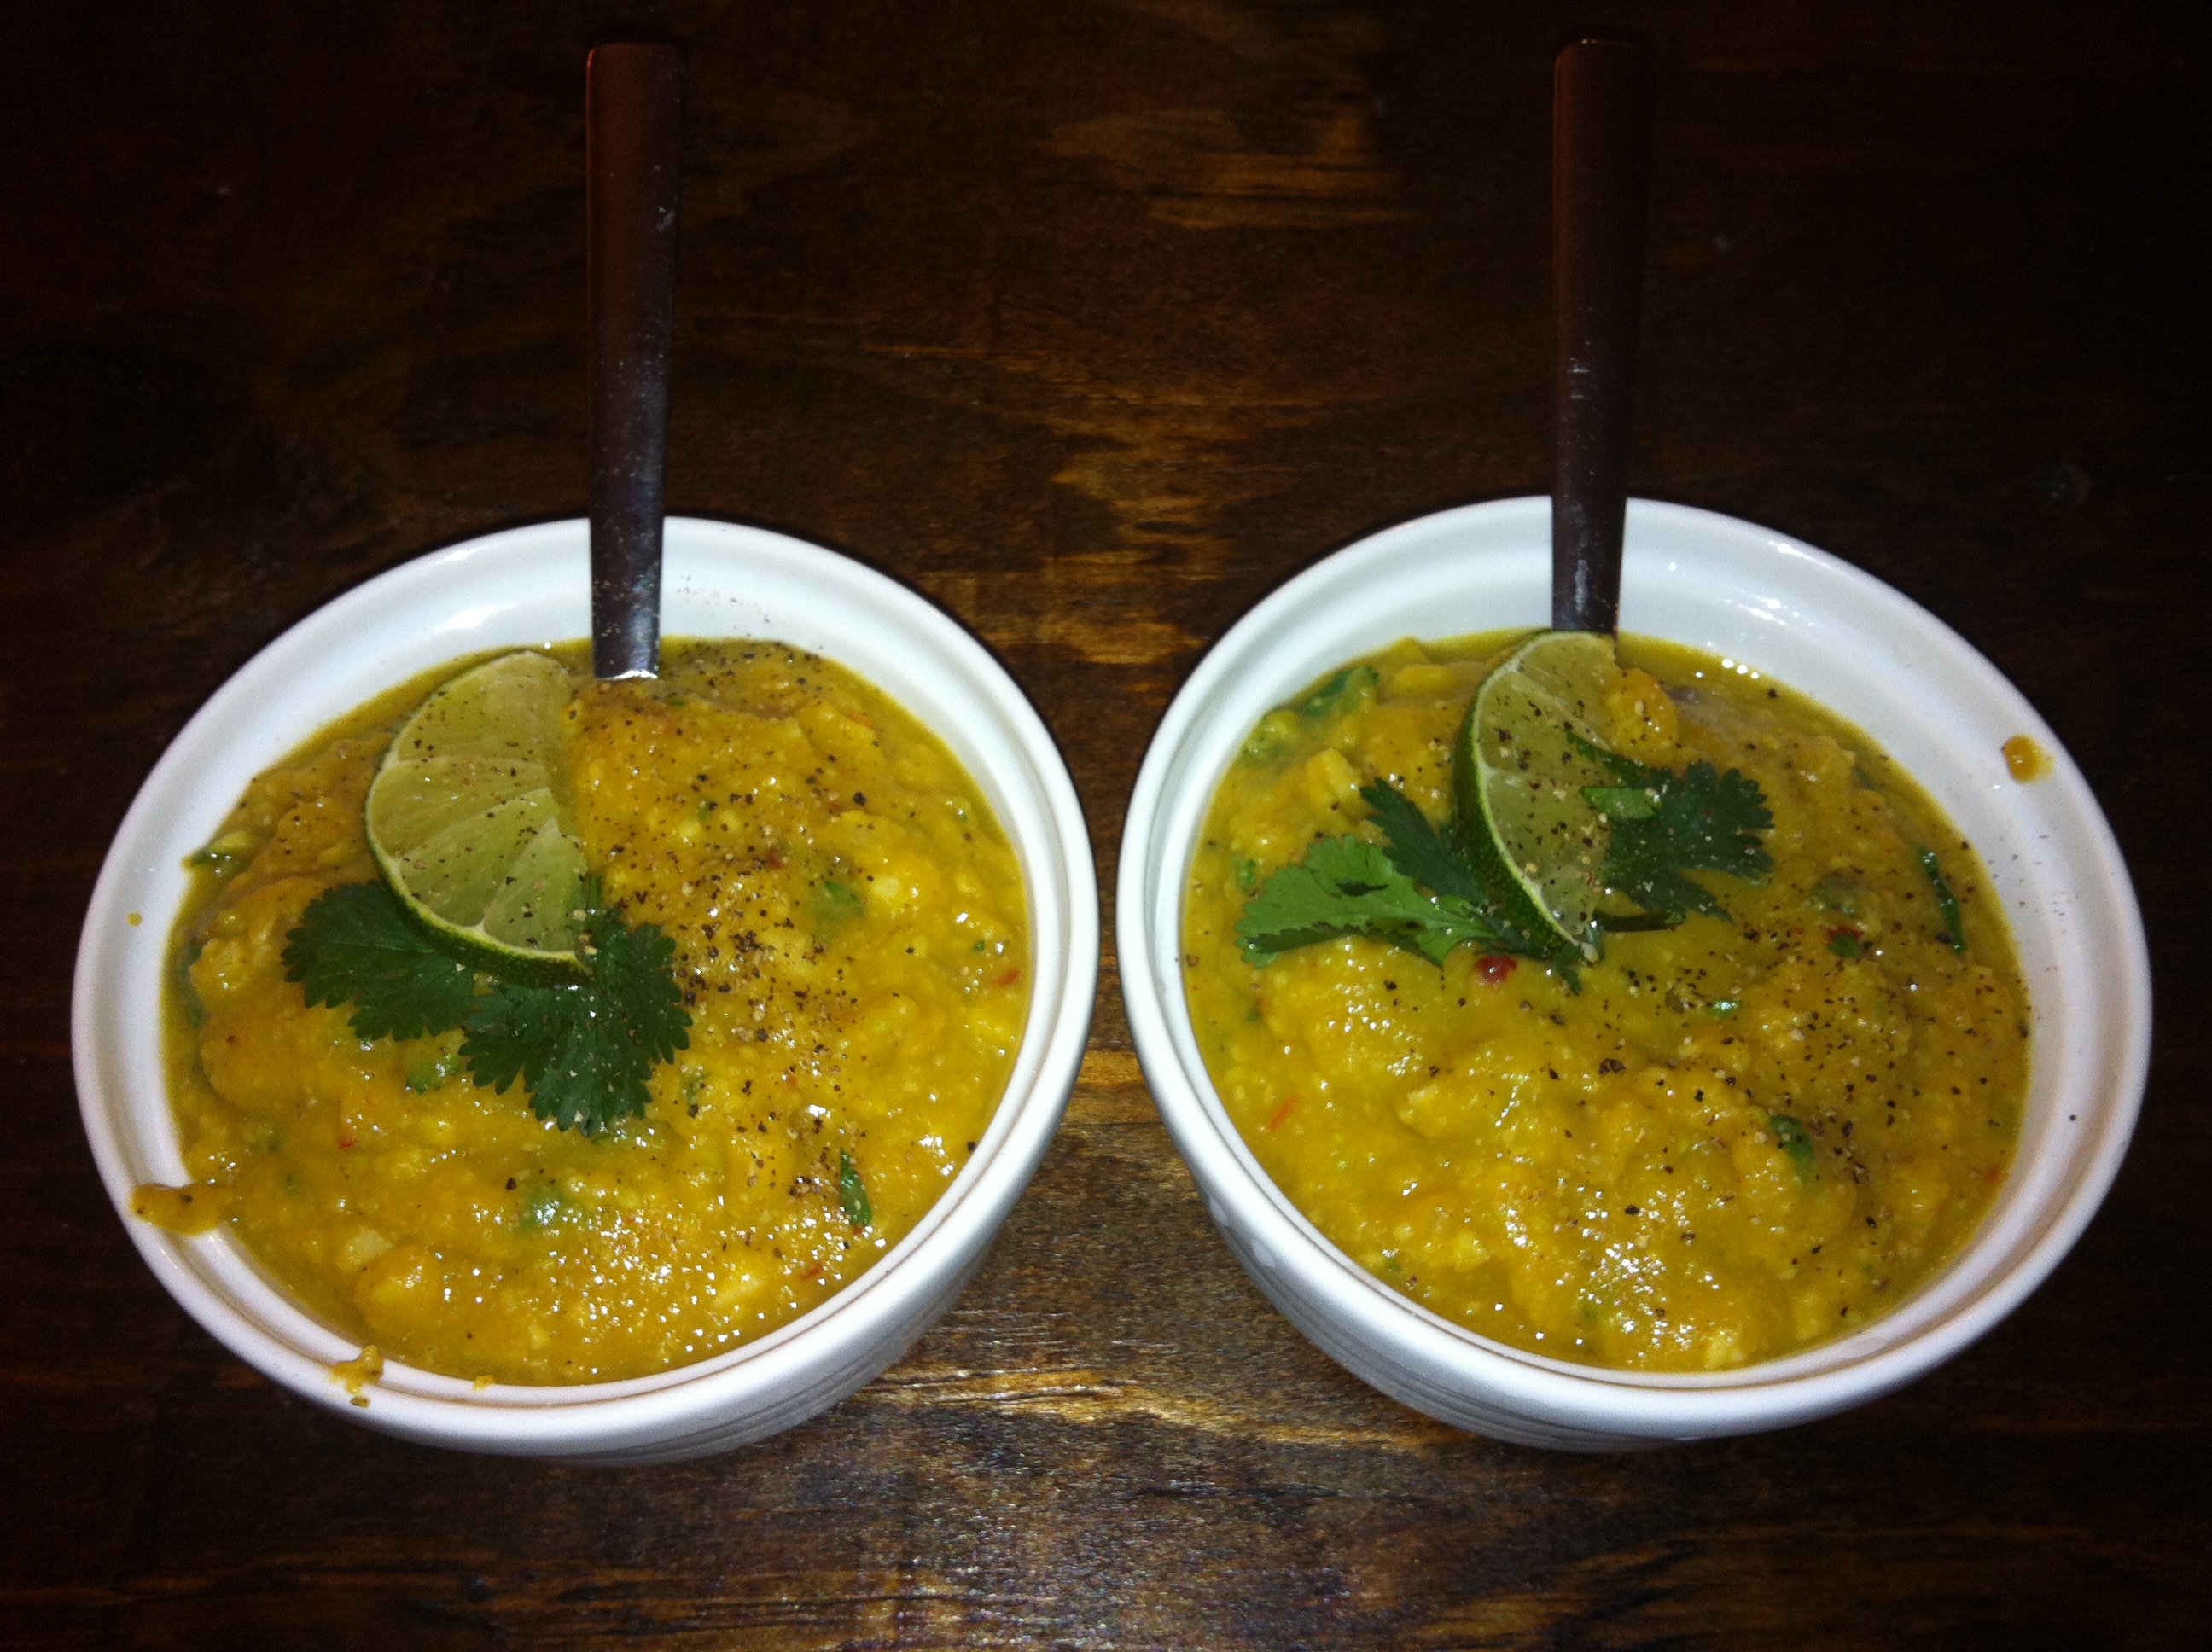 Spicy Butternut Squash and Avocado Soup